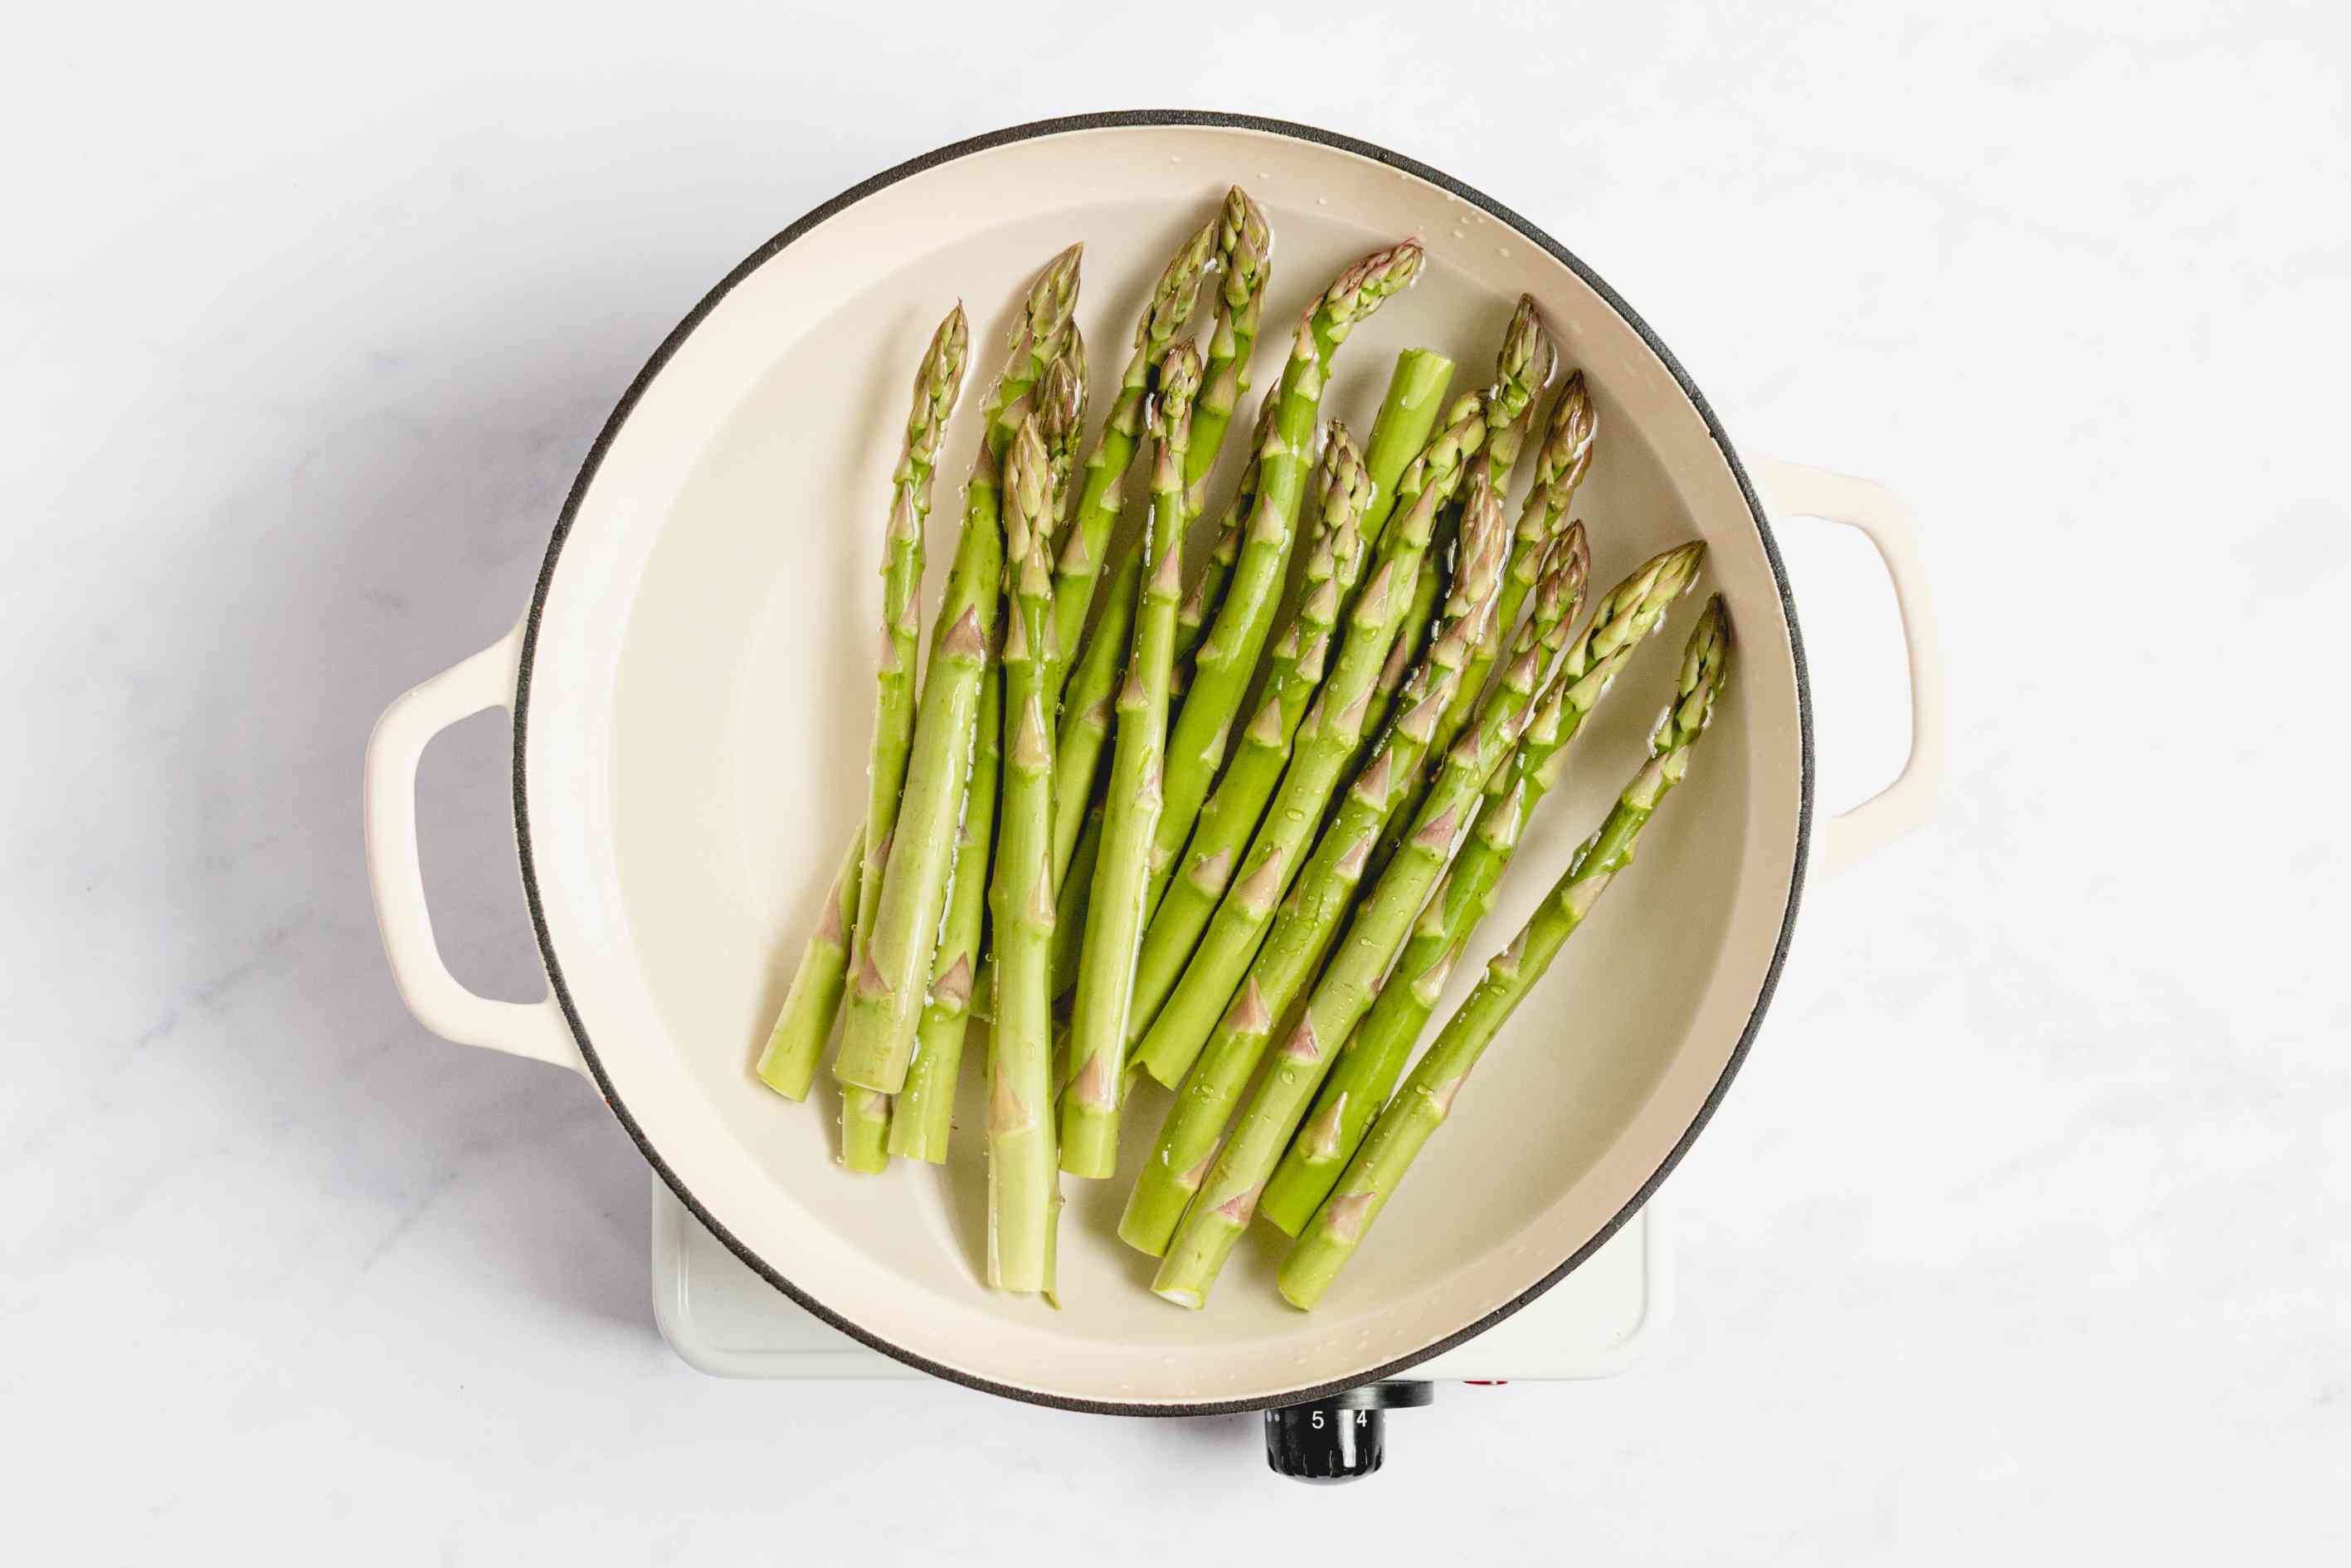 Place the asparagus in a wide shallow saucepan